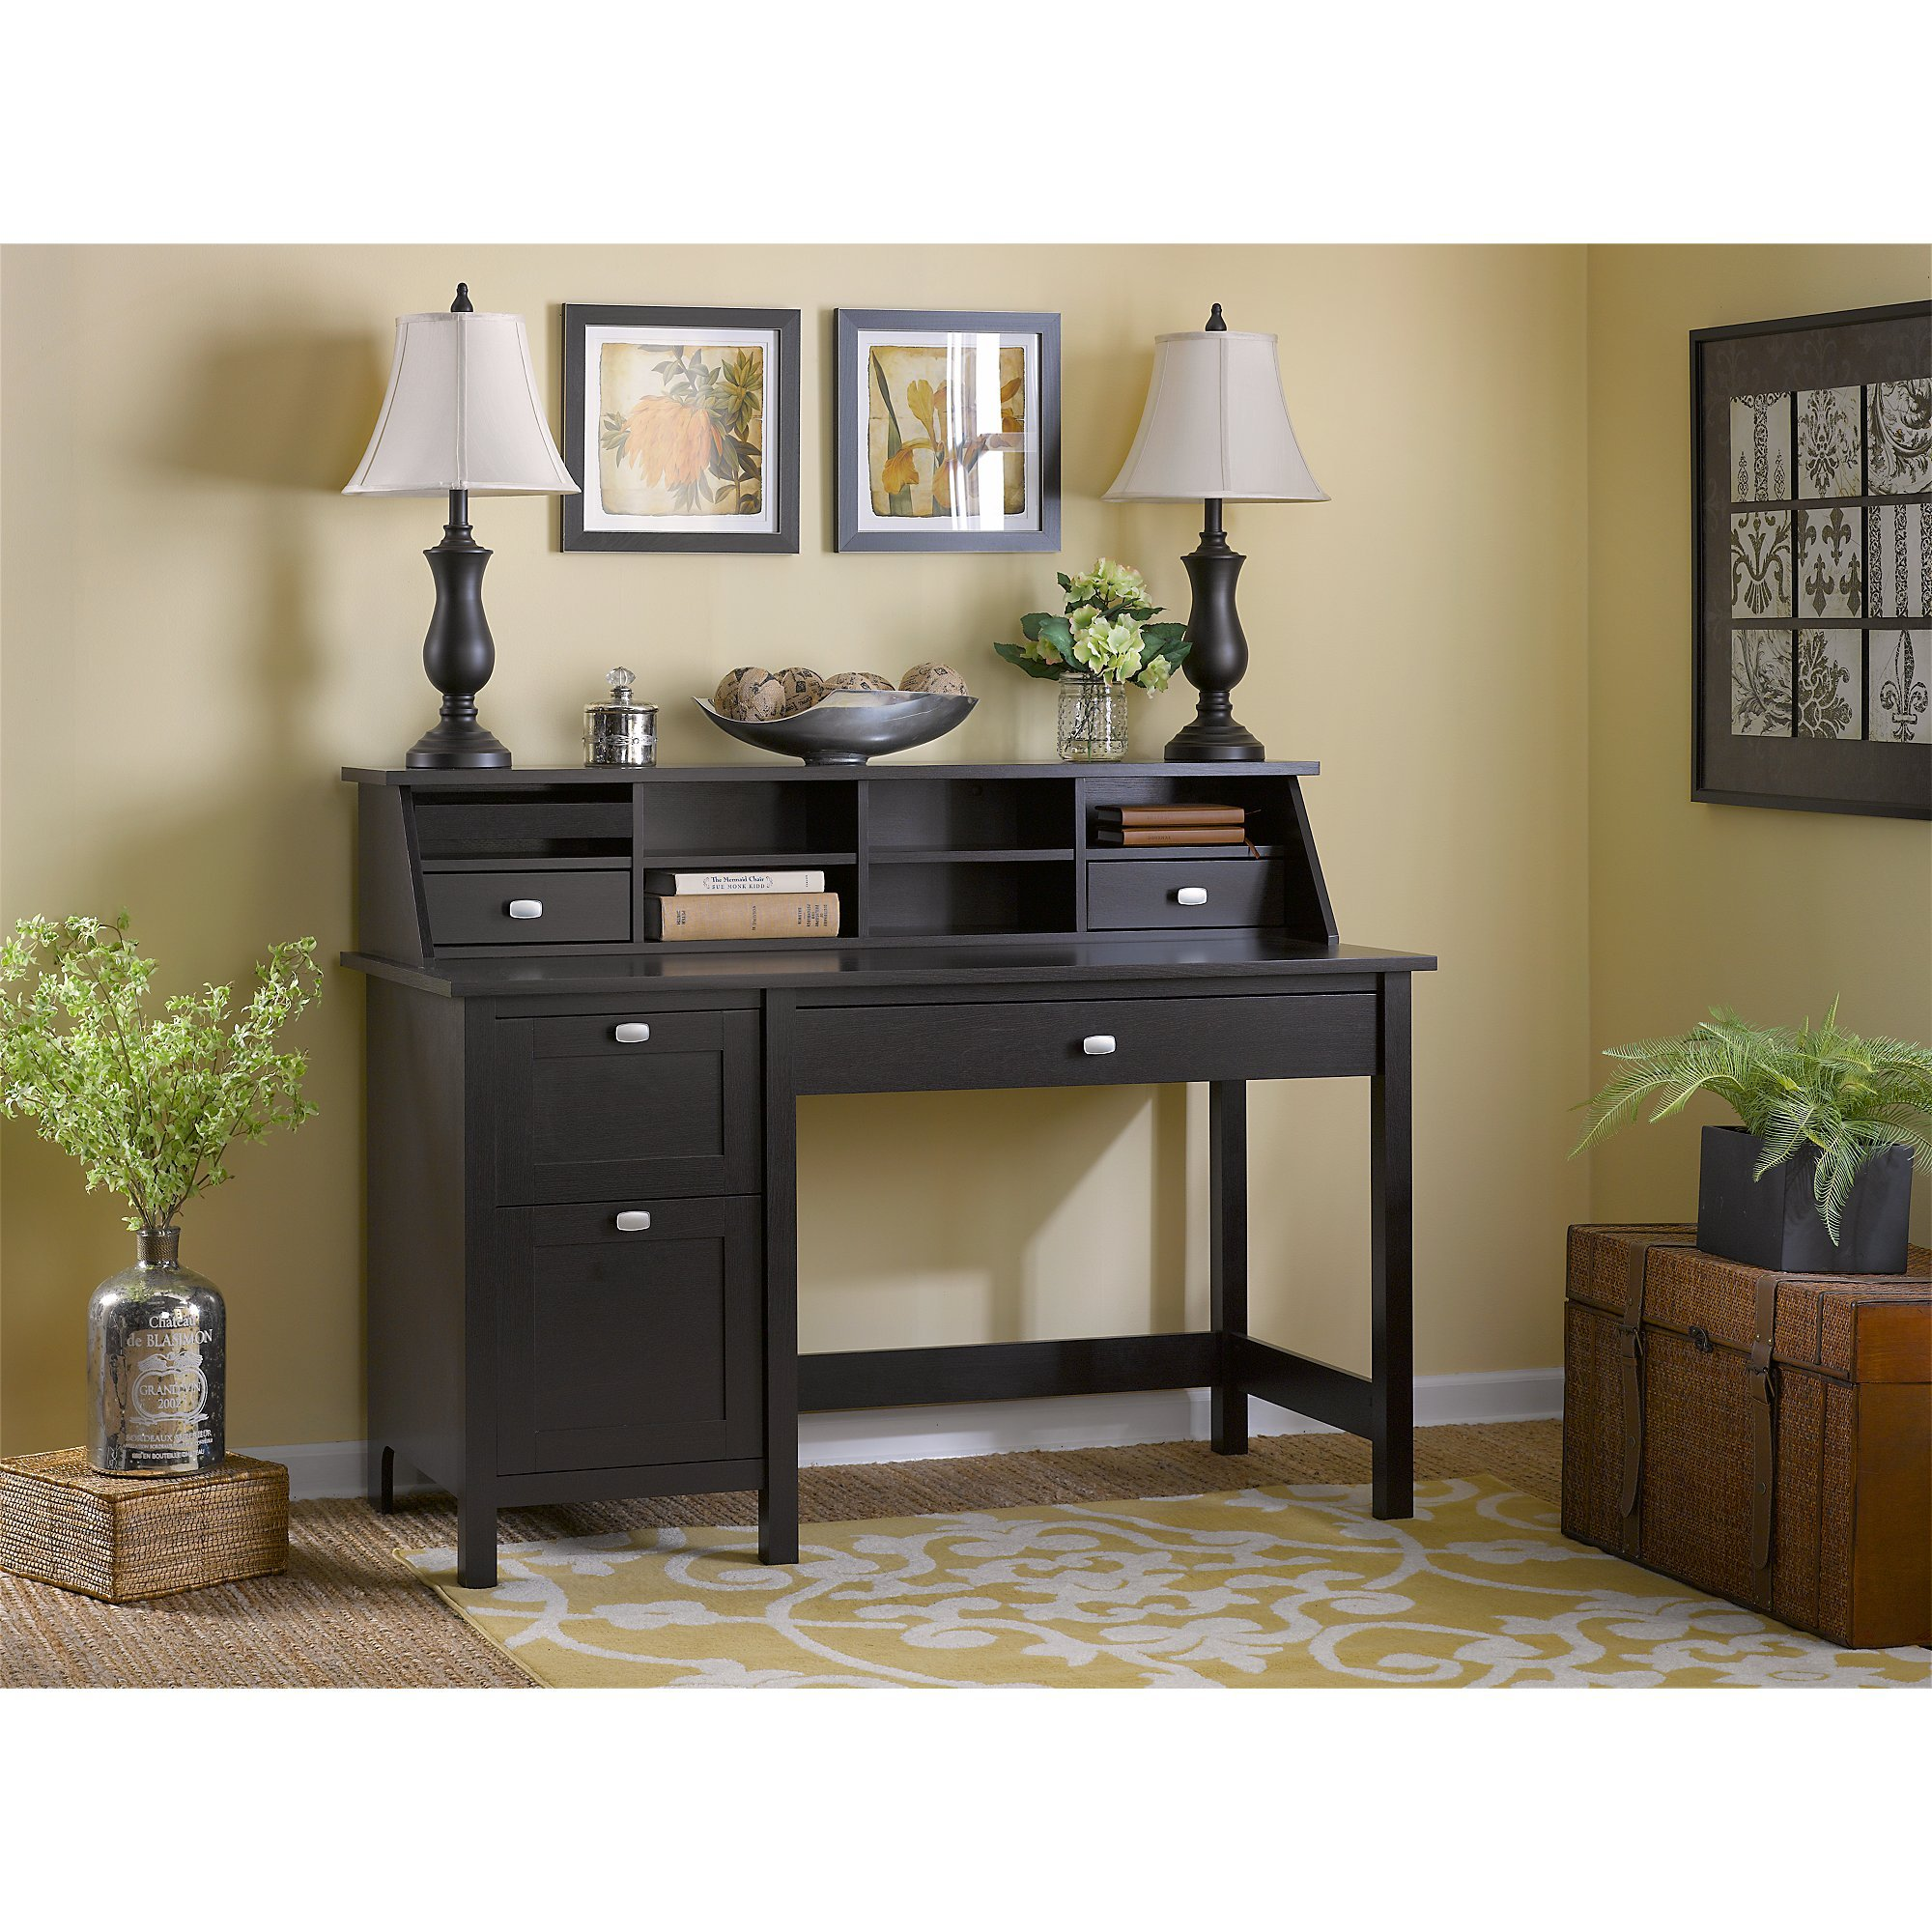 Bush Furniture Broadview Computer Desk with 2 Drawer Pedestal and Organizer